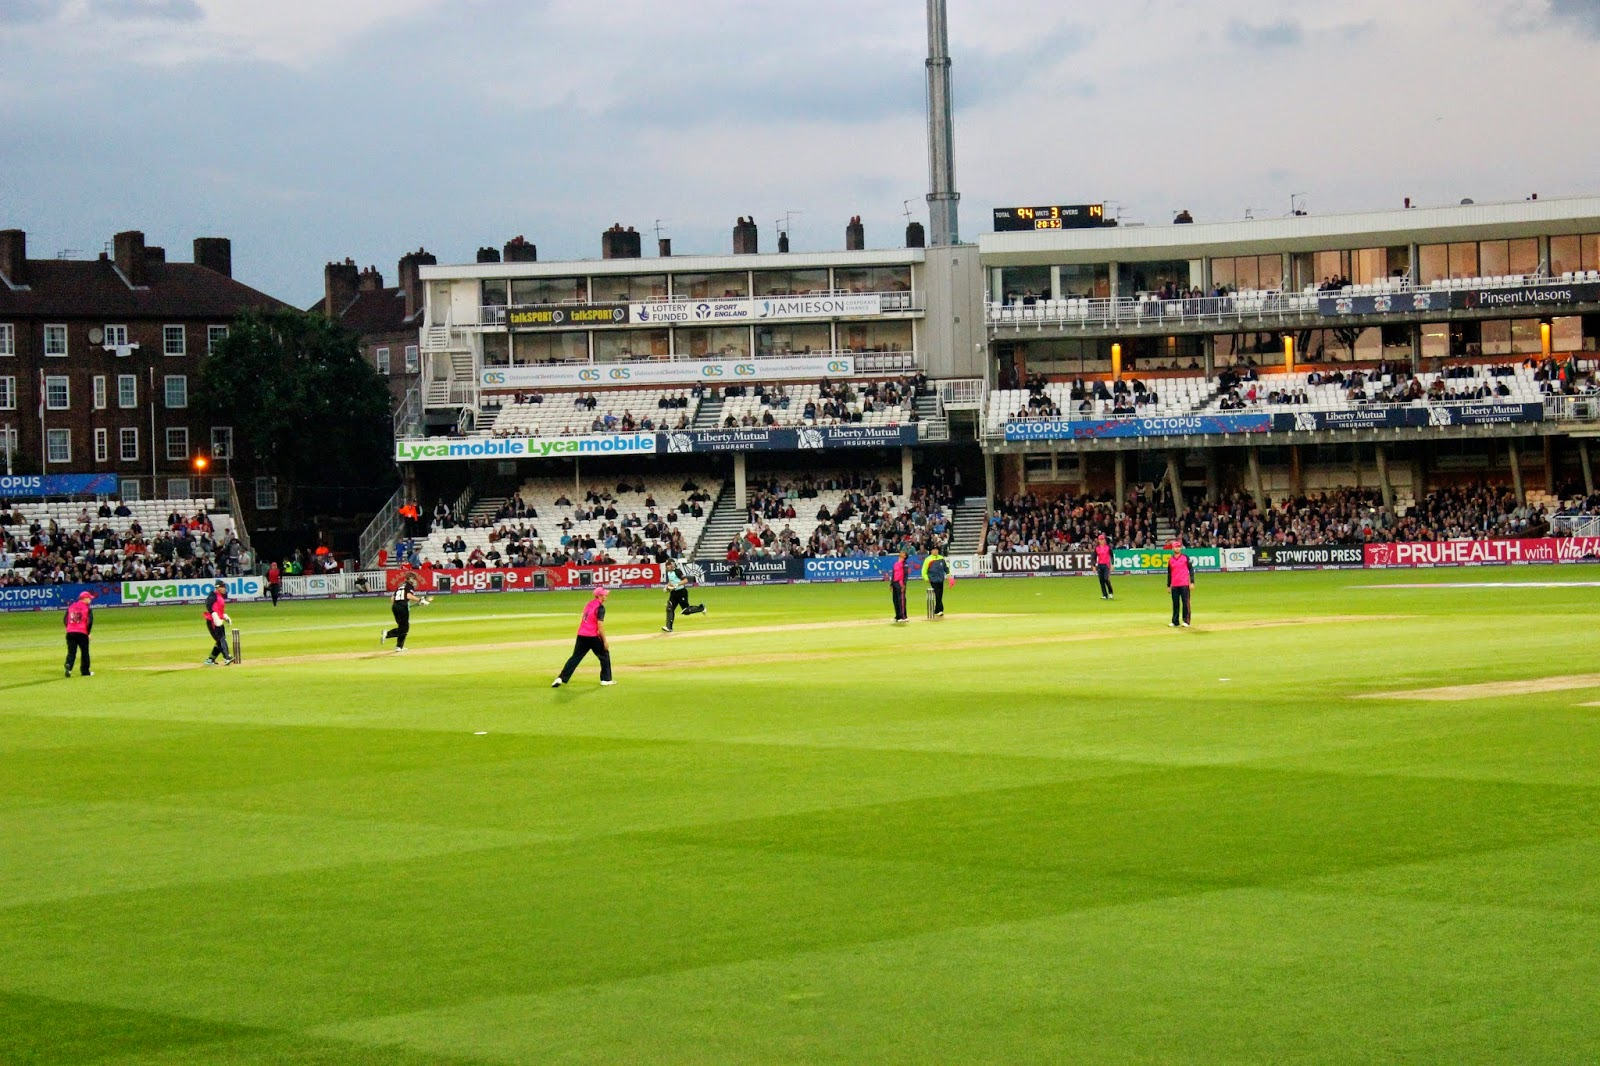 lifestyle, london, sport, cricket, kia oval, 20/20 cricket, ecb, cricket matches, surrey cricket club, middlesex panthers, cricket match, friday 20/20 cricket, London cricket, That Guy Luke, Blog, Sports Blog,